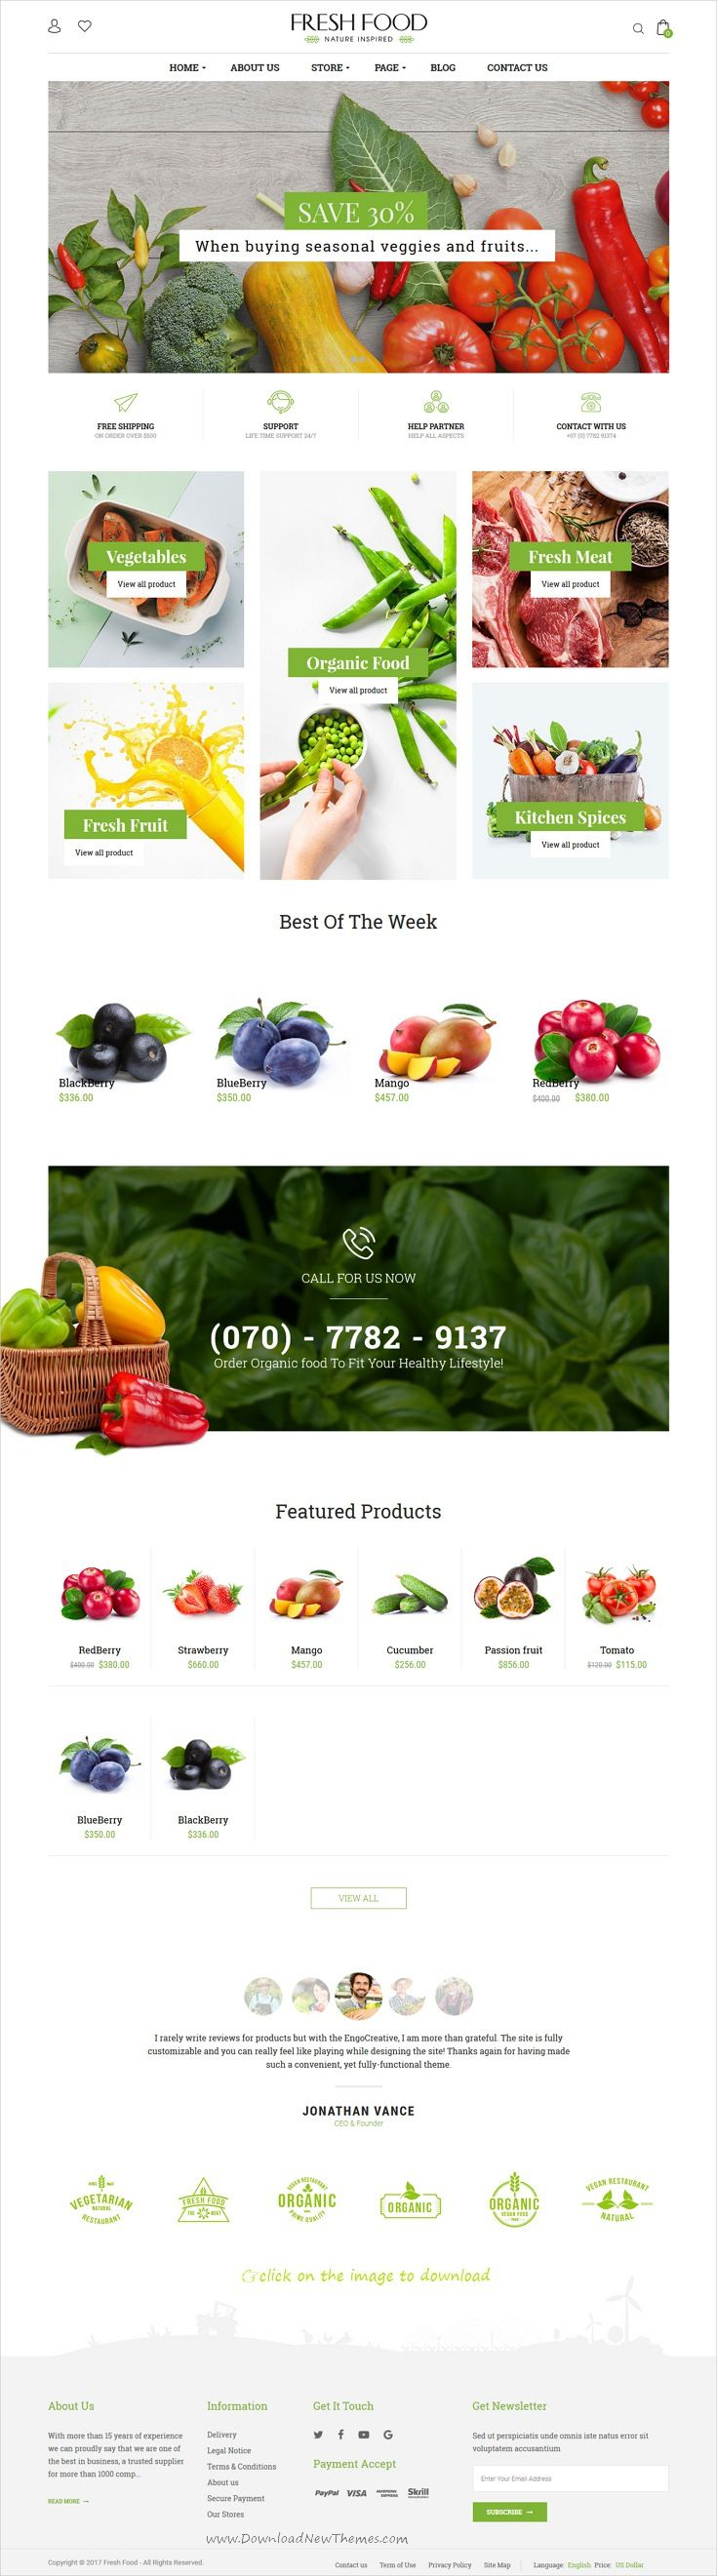 Fresh Food is clean and modern design 4in1 responsive #ZenCart template for organic food, fruit and #vegetables shop #eCommerce website to download 👉click on image.